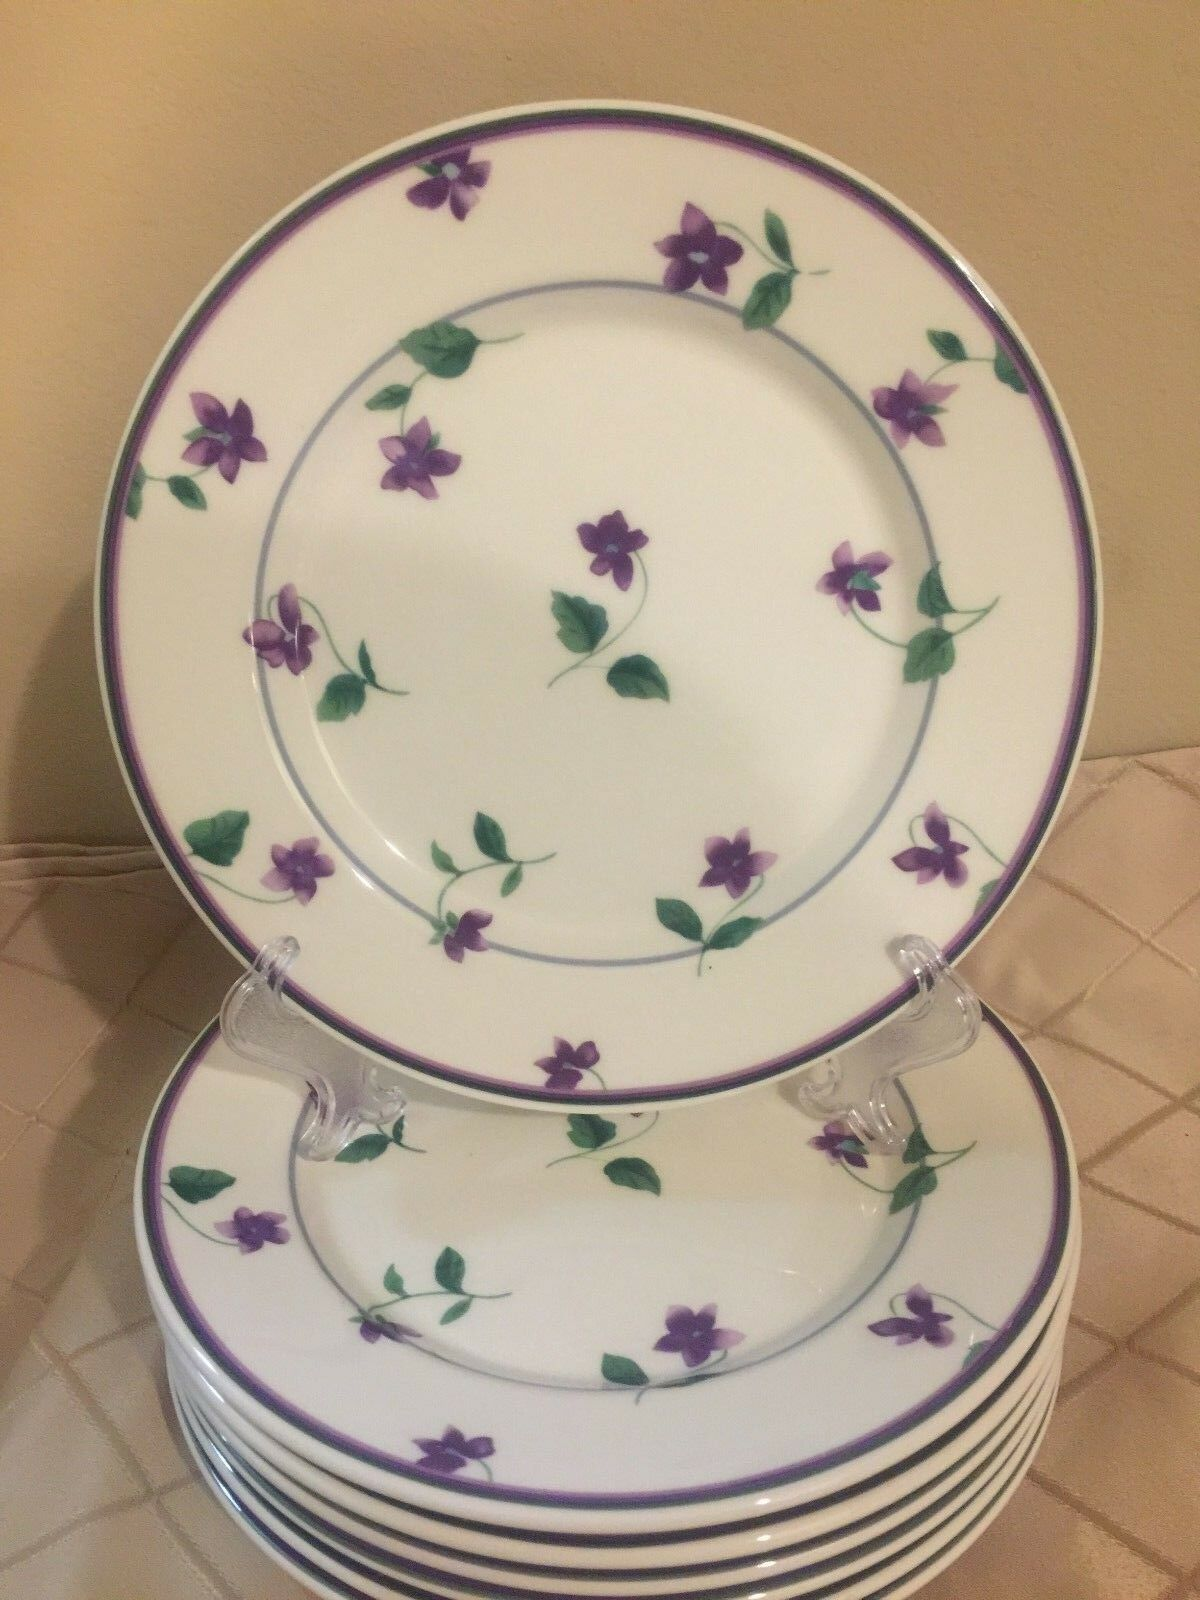 Waverly Sweet Violets Salad Plates - Lot of 6 Salad Plates - Great Condition! - $37.55